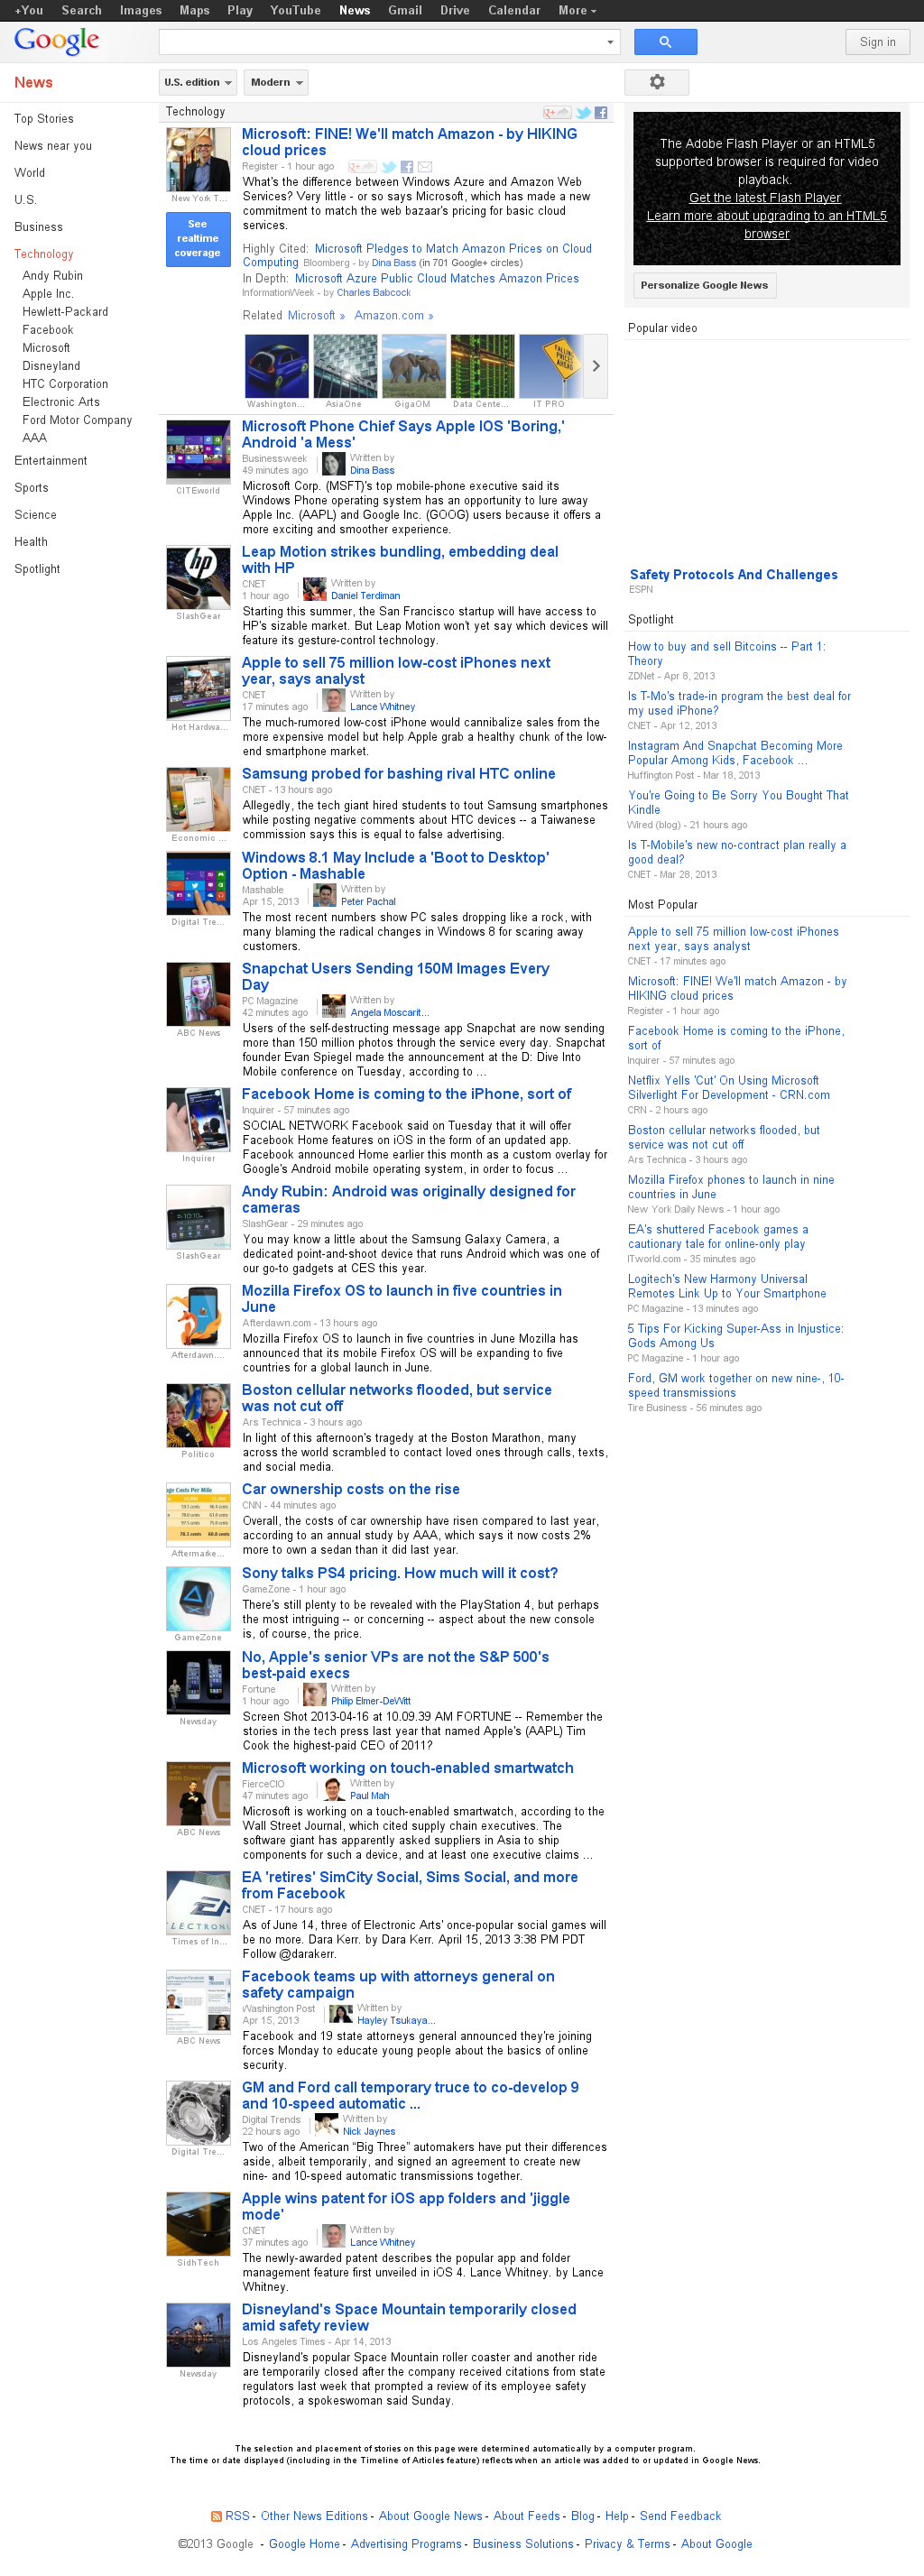 Google News: Technology at Tuesday April 16, 2013, 4:09 p.m. UTC